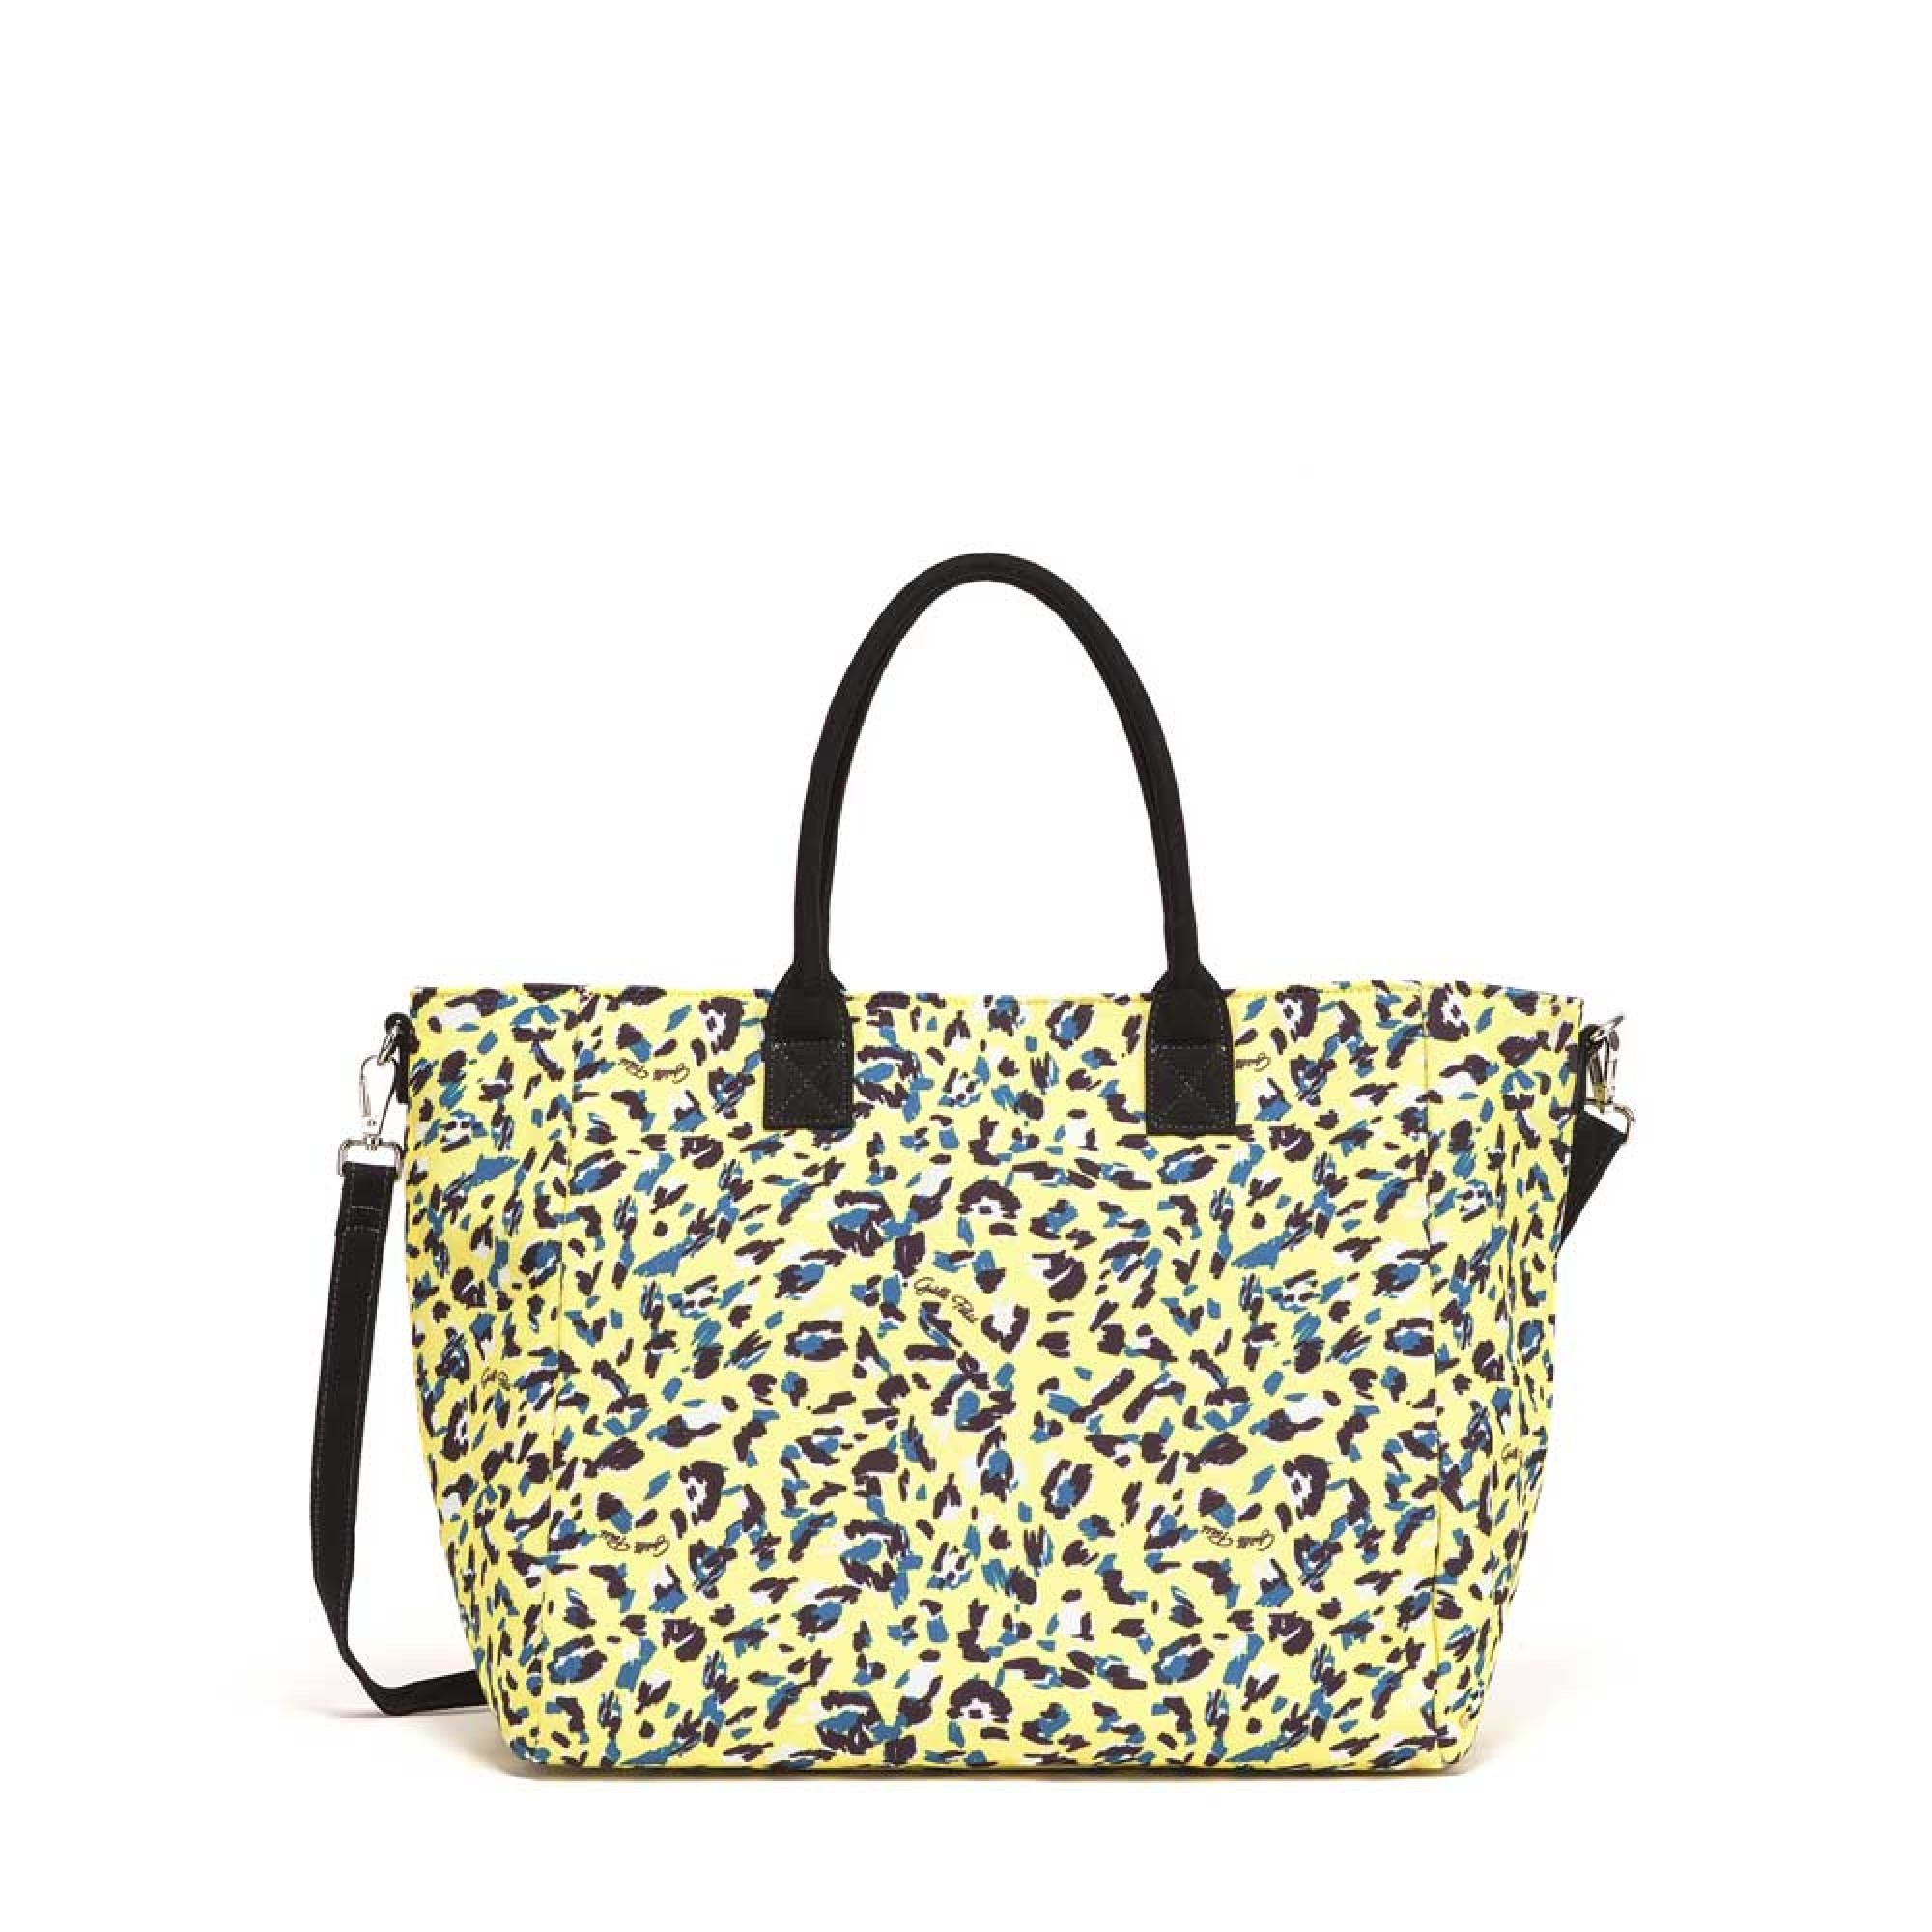 SHOPPER - GBDB161 - GAELLE PARIS